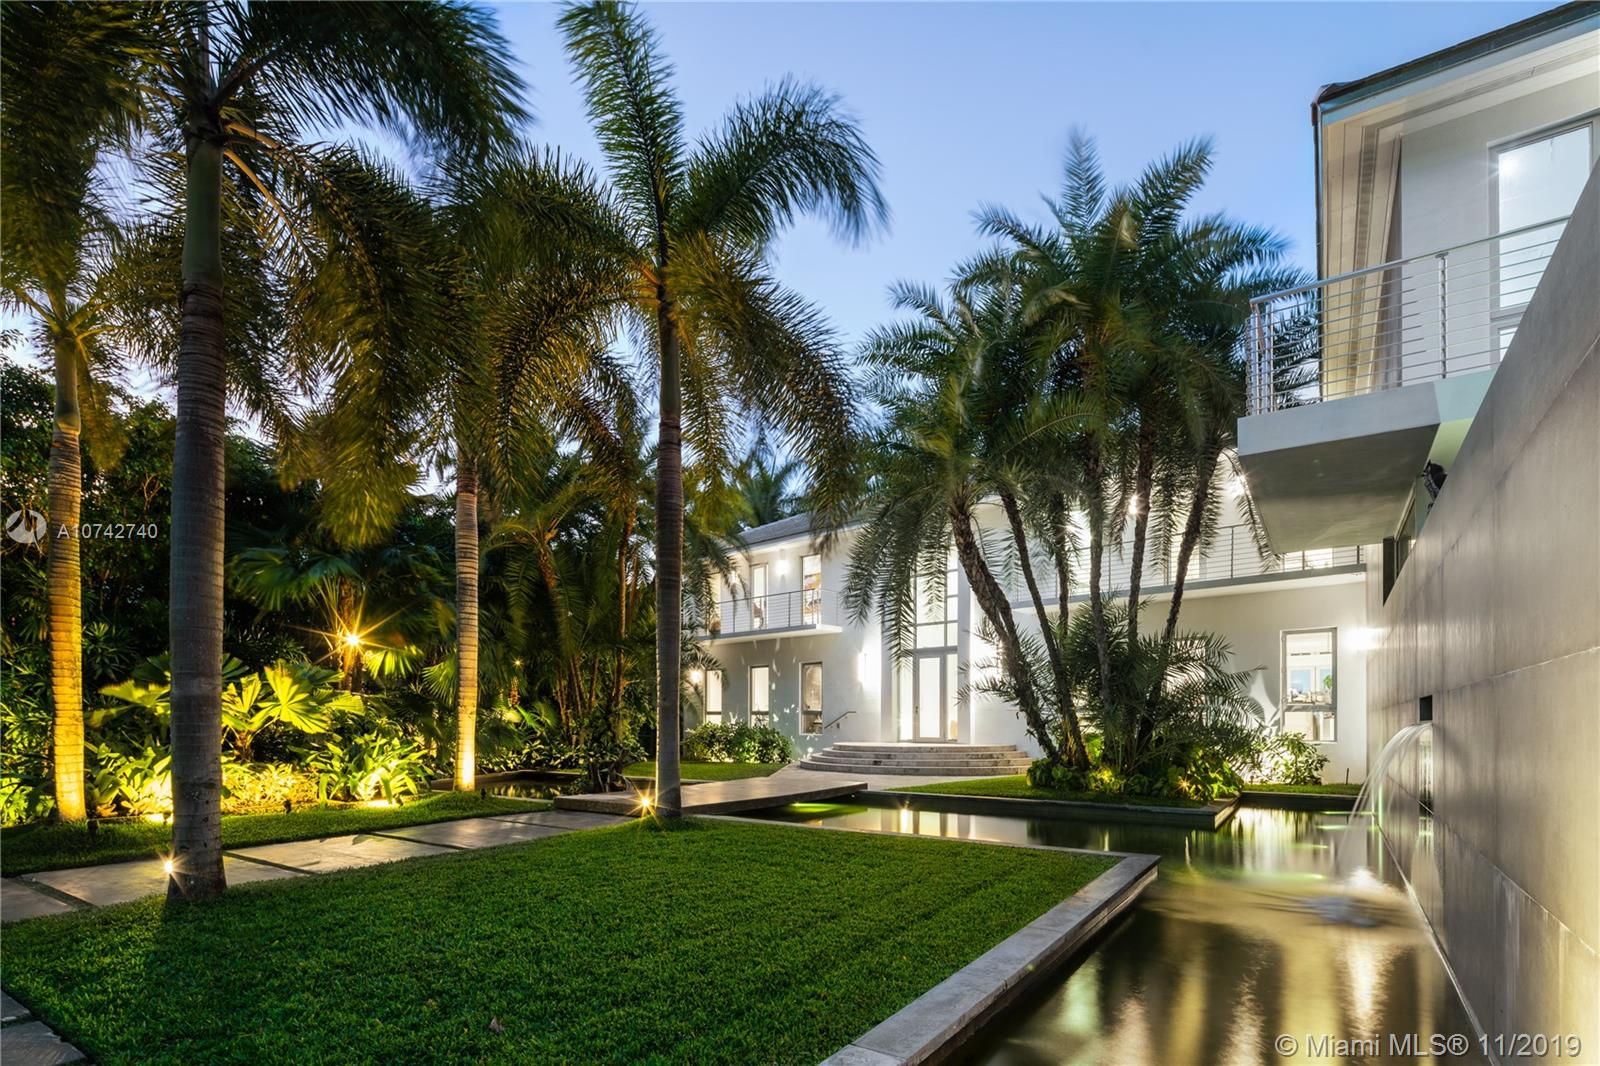 1835 W 27th St Luxury Real Estate